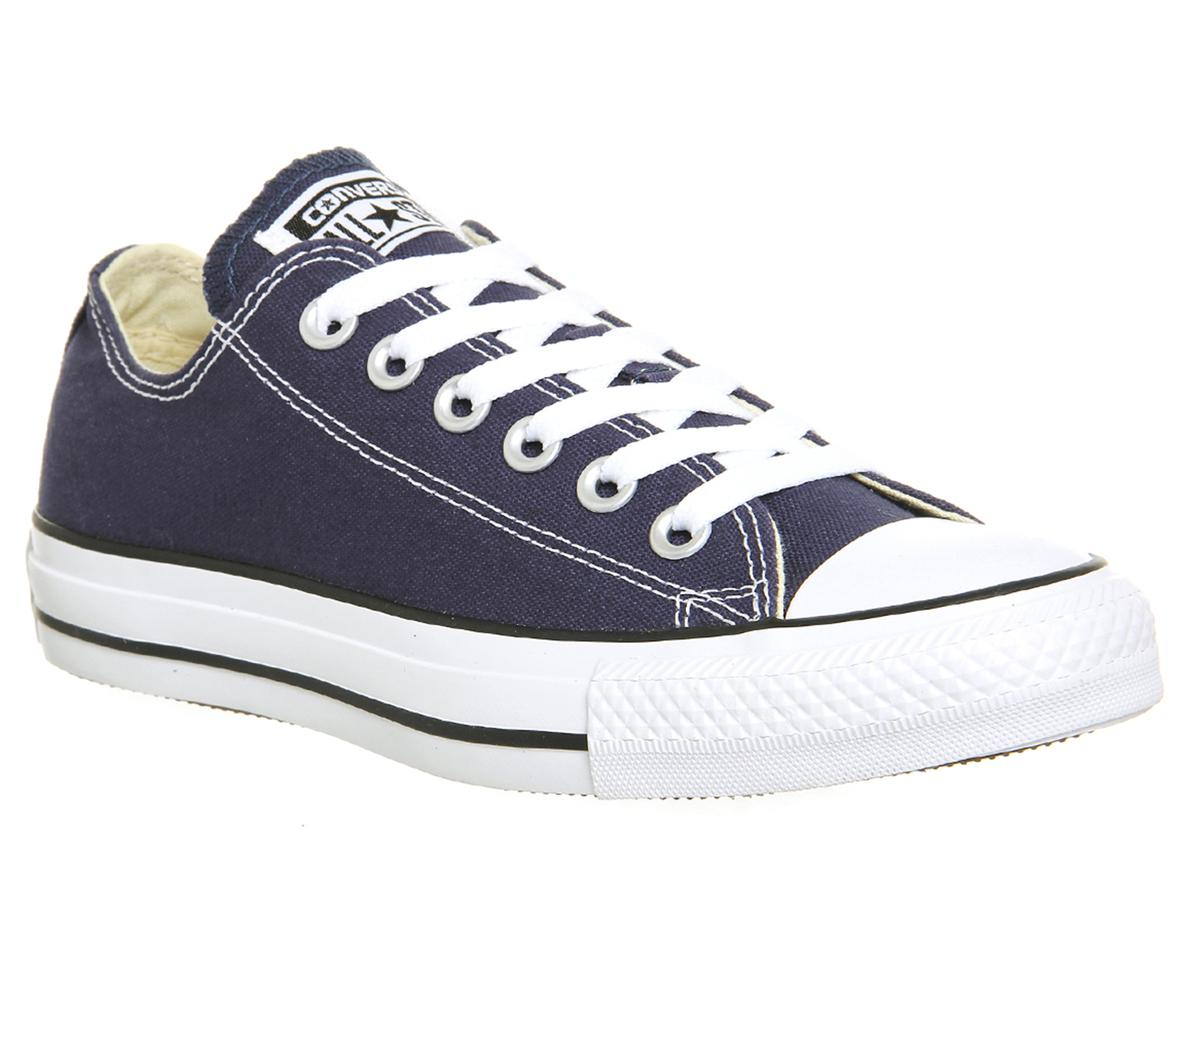 1e82f59dae Converse All Star Low Navy Canvas - Unisex Sports